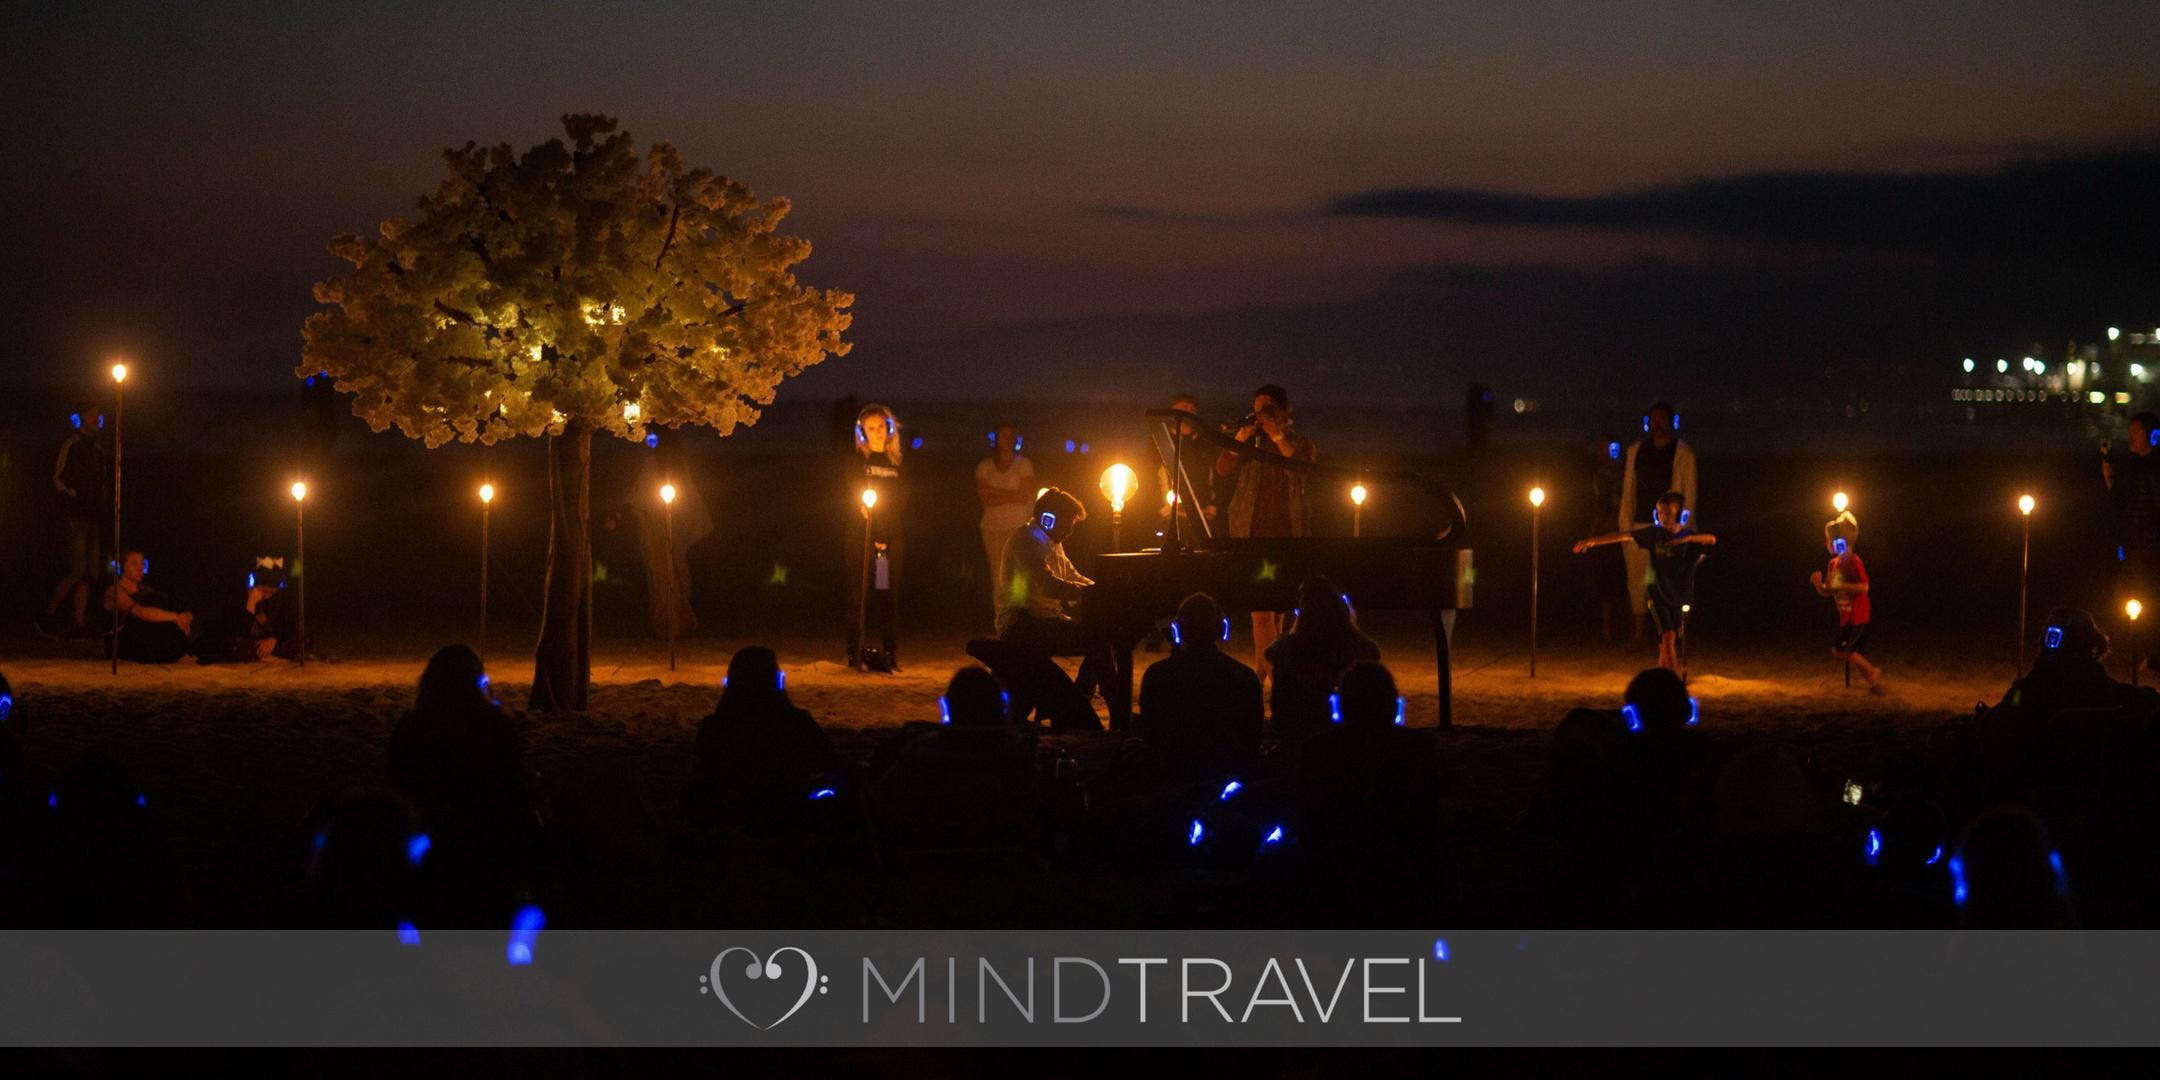 Mindtravel Live To Headphones Silent Piano Experience On Santa Monica Beach